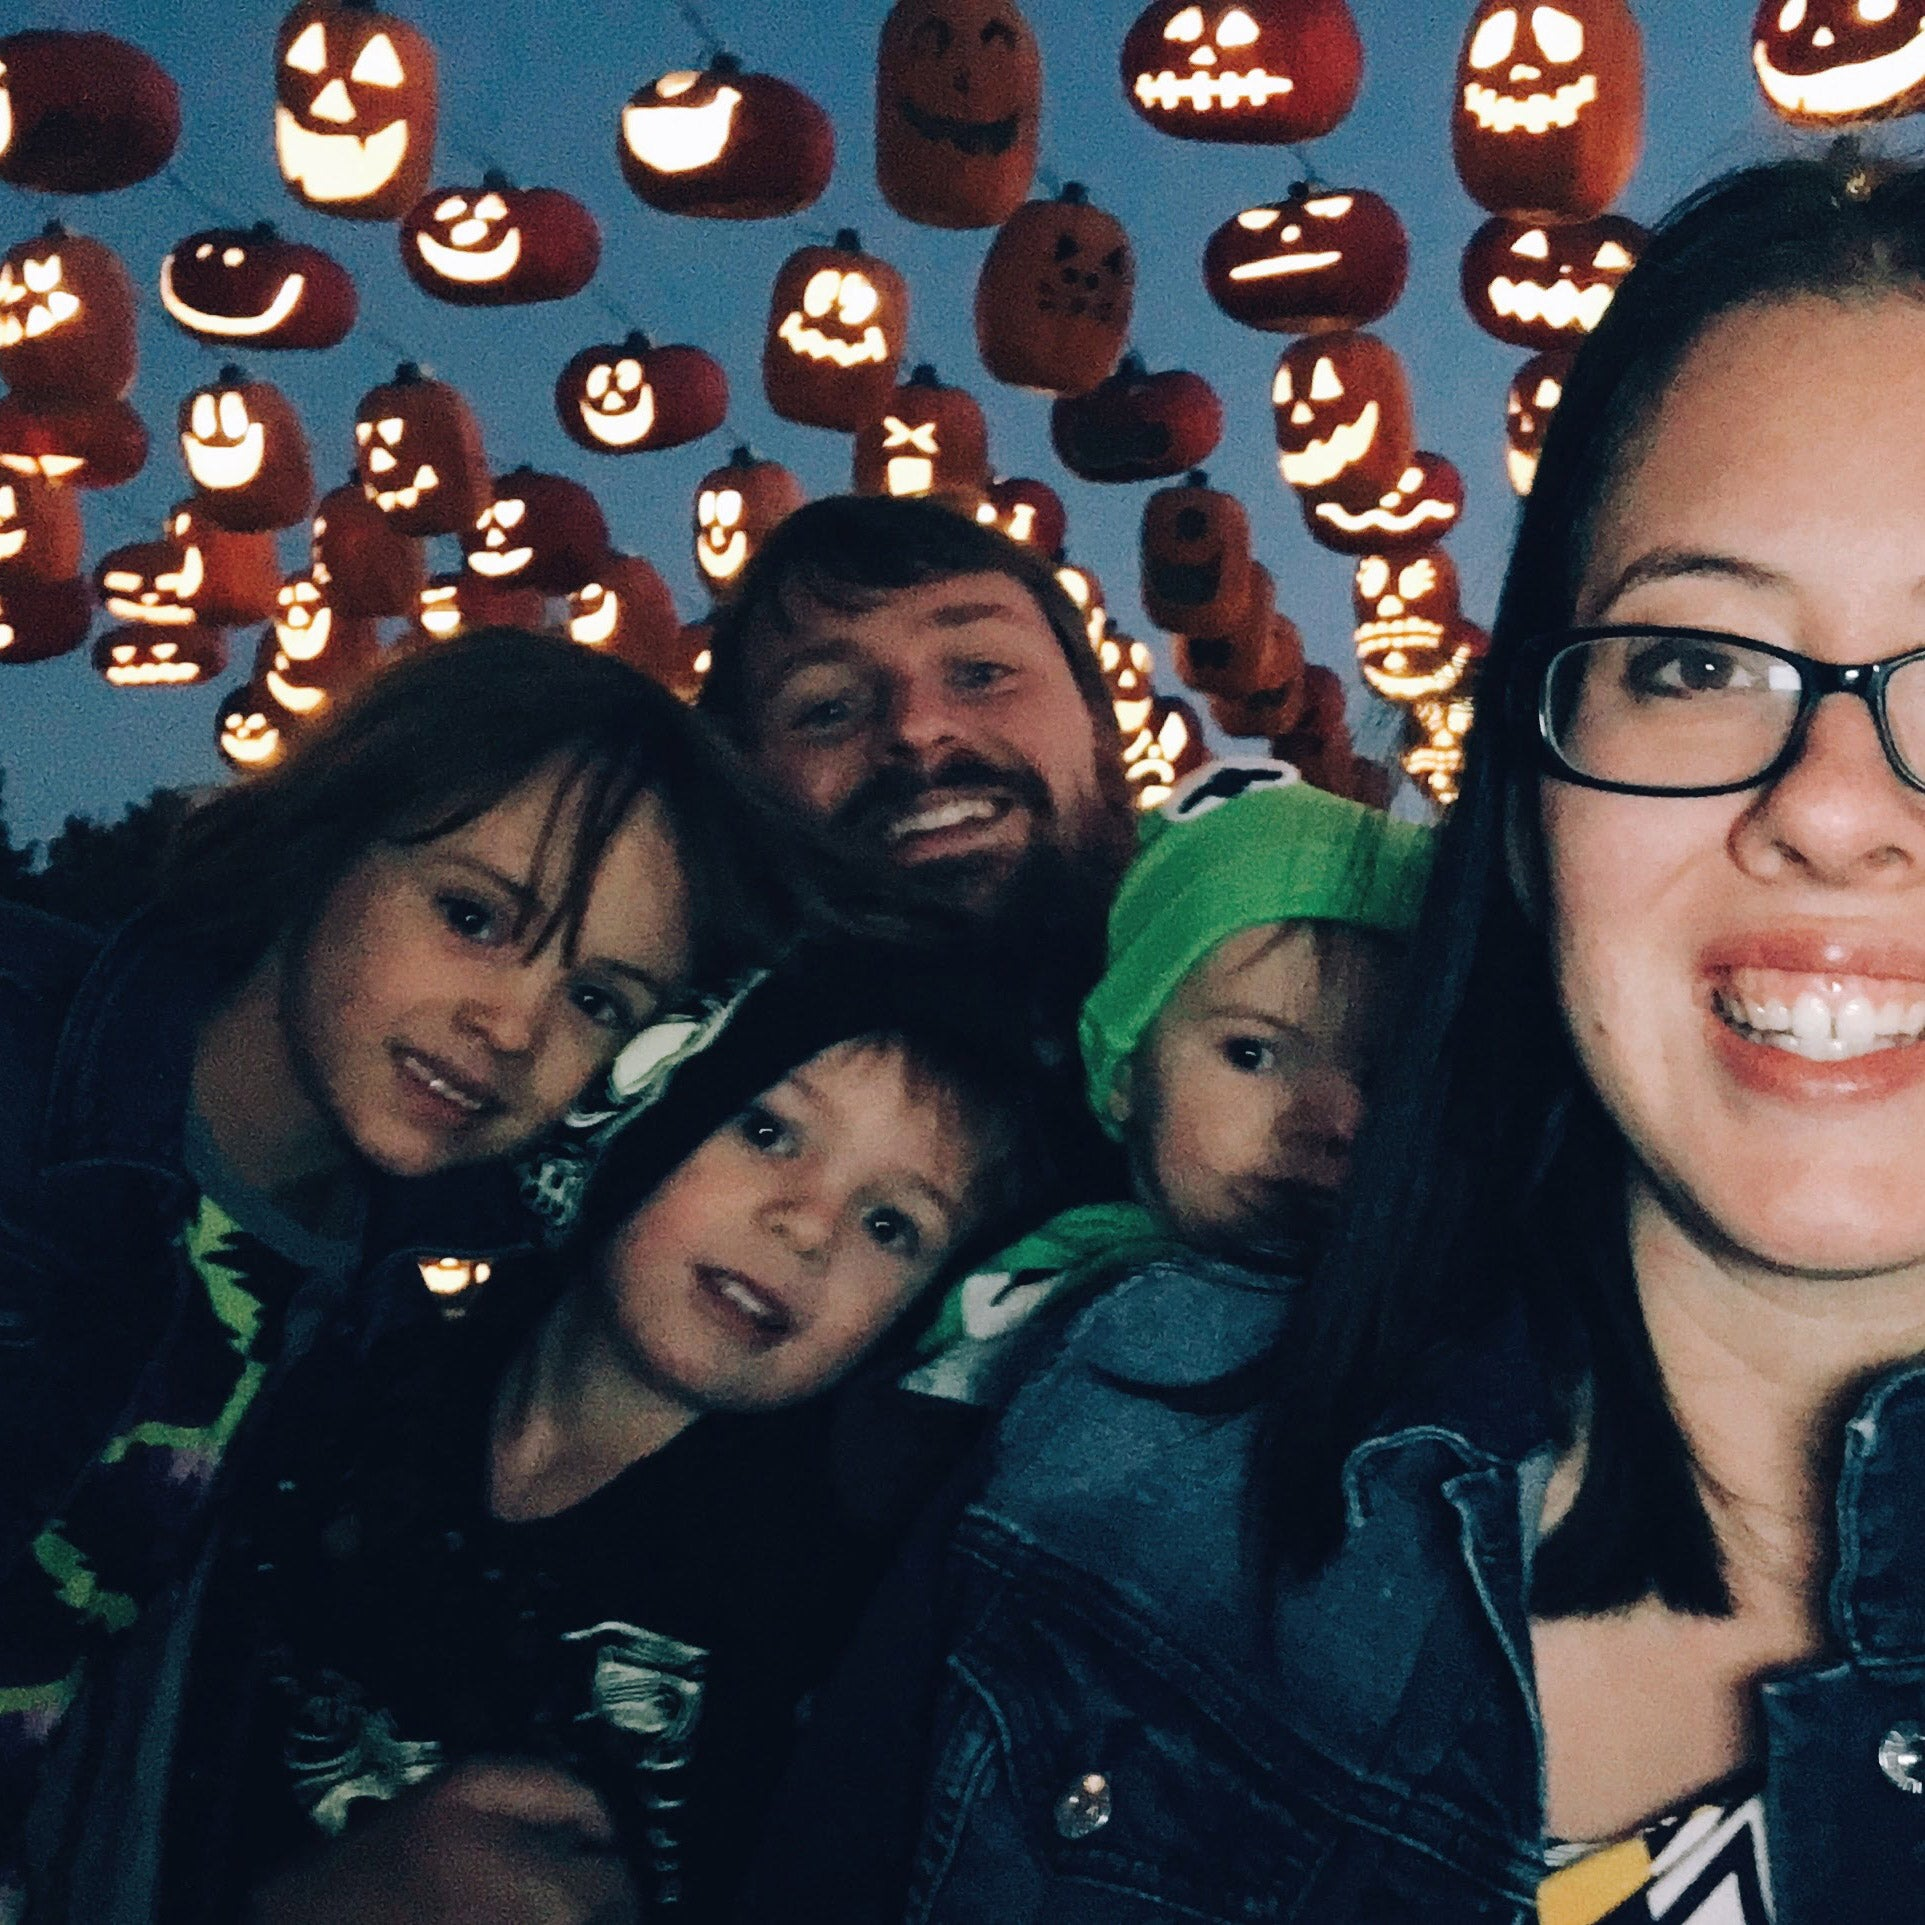 Family of five at Pumpkin Nights for Halloween